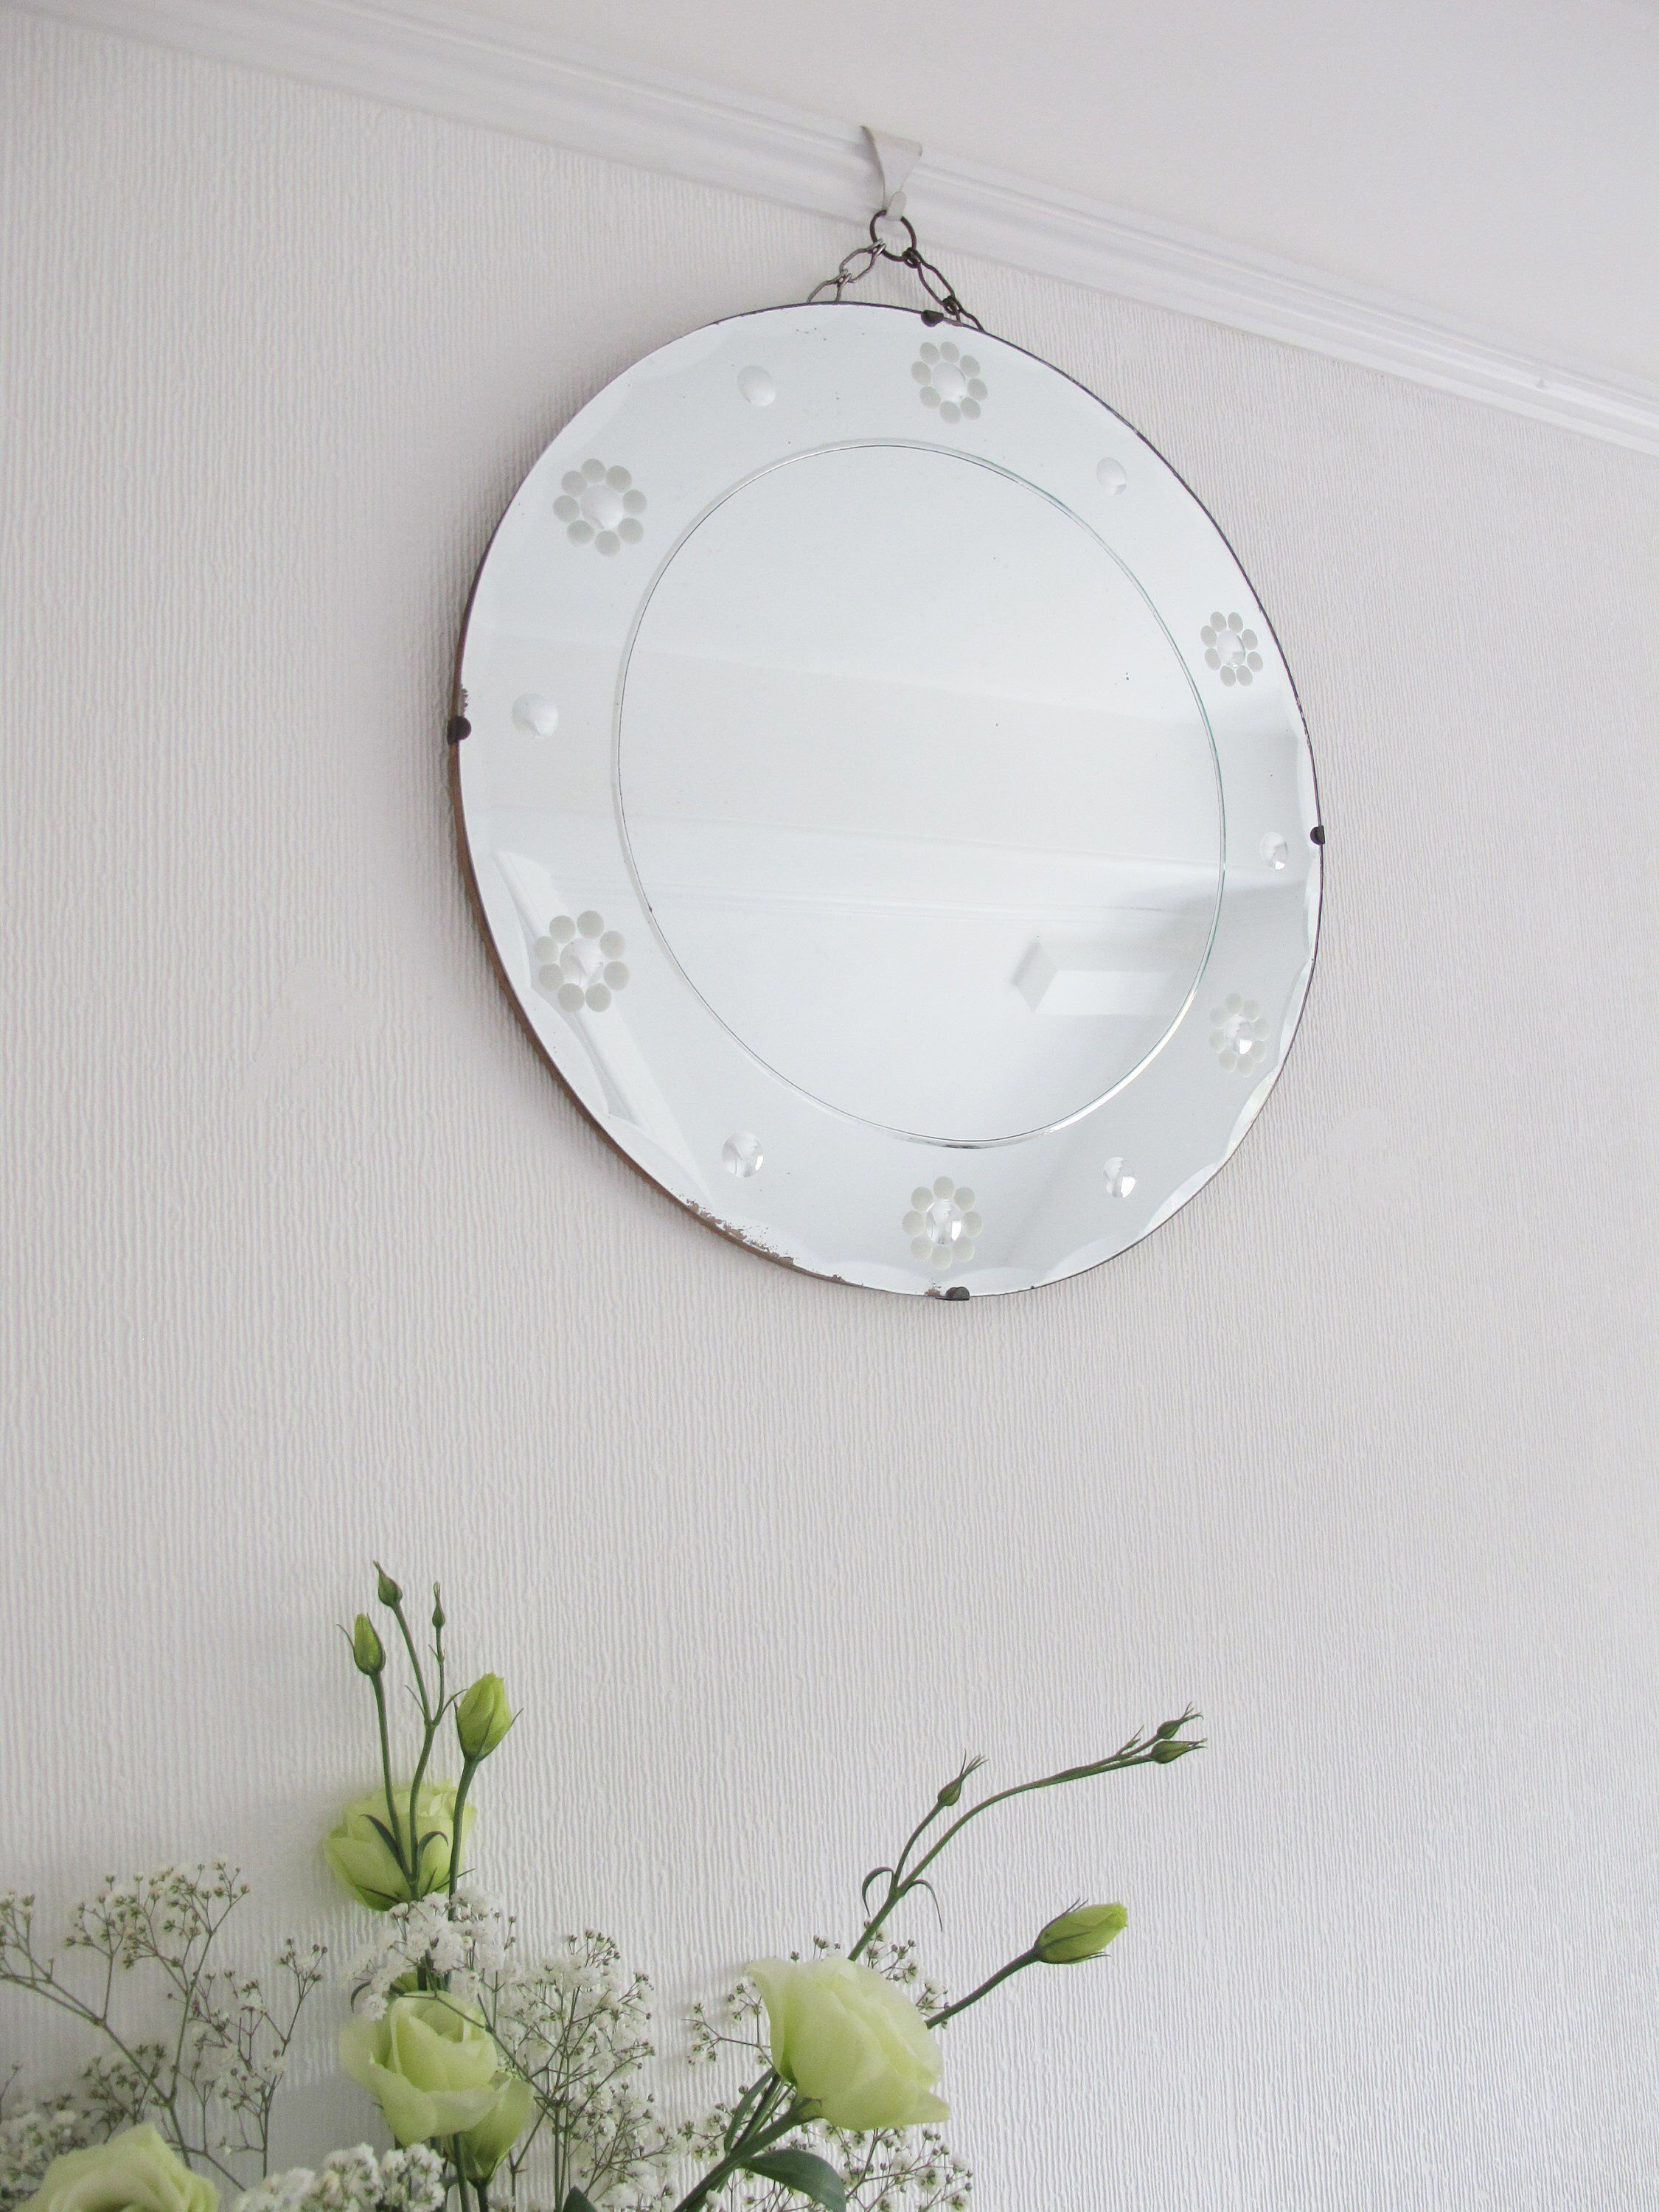 Vintage Beveled Edge Round Frame Less Mirror Art Deco Mirror With Original Visible Hanging Chain Ready To Ha Art Deco Mirror Hanging Mirror Mirror